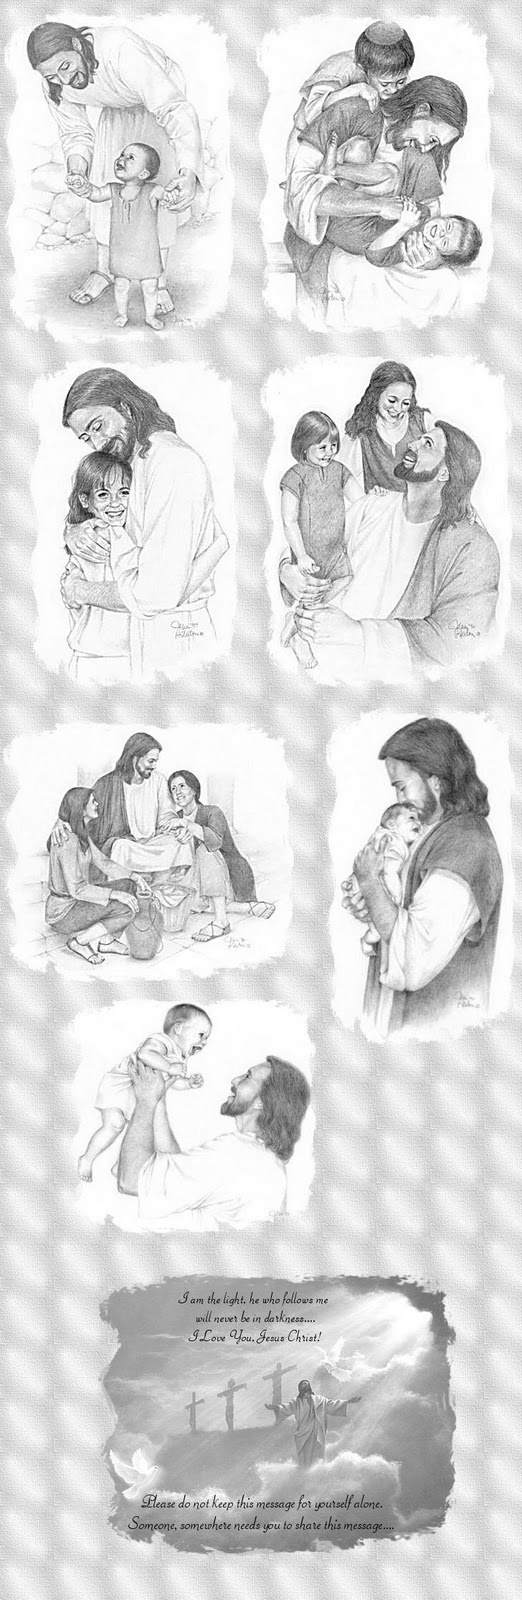 Jesus Laughing - with children - it's precious - 2013 Rainbow Roundtable